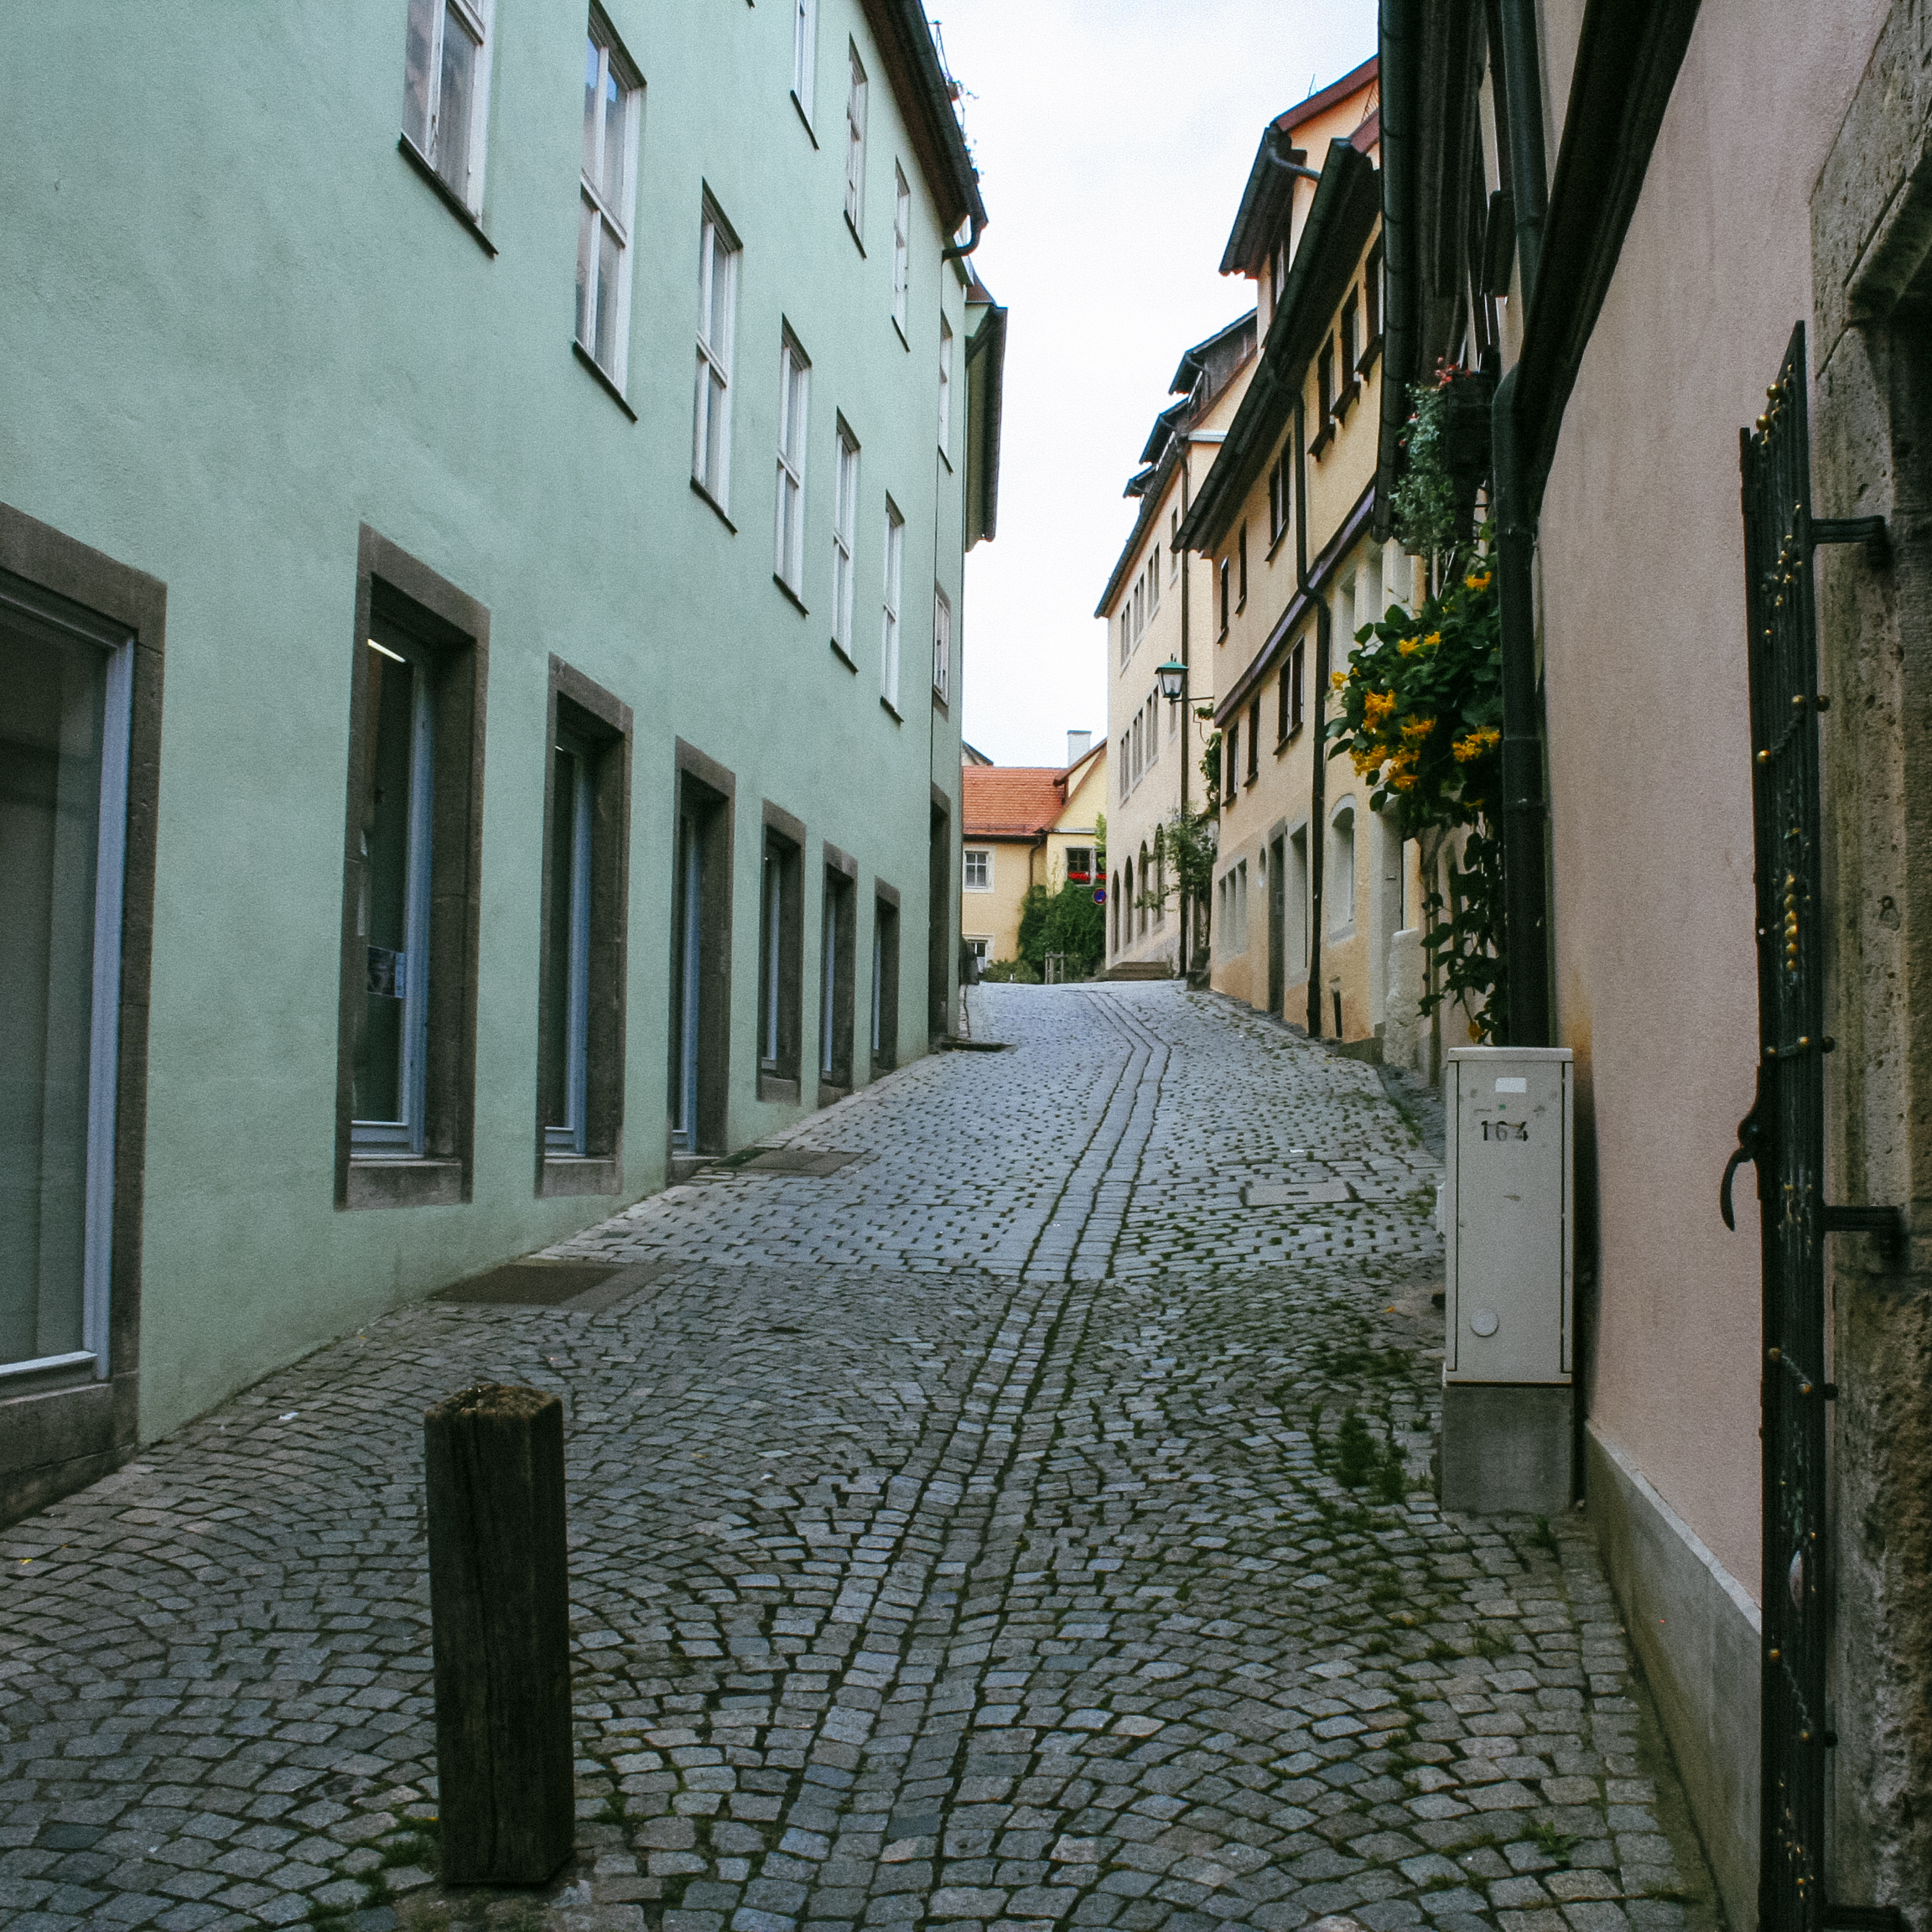 Unknown Alley, Germany